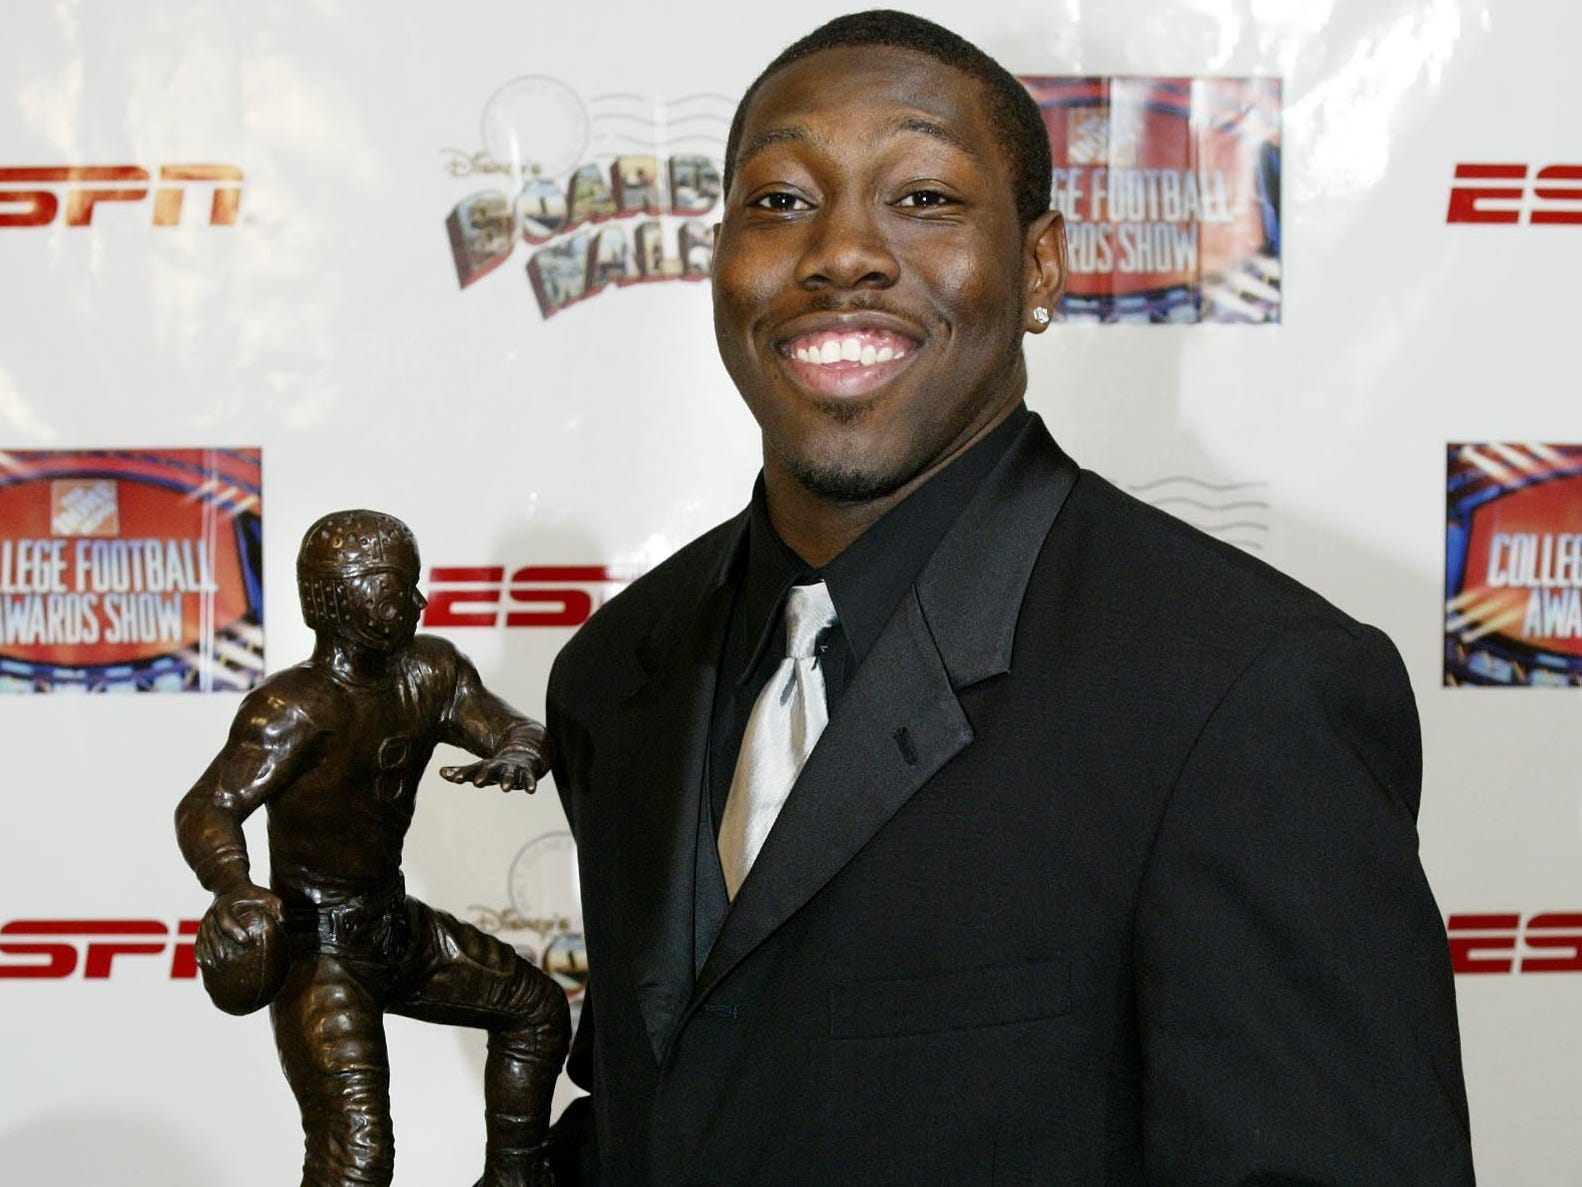 From 2002: Iowa quarterback Brad Banks smiles while holding his award after winning the Davey O'Brien National Quarterback Award at the Home Depot College Football Awards on Thursday, Dec.12, 2002 at the Atlantic Hall at the Walt Disney World Resort in Lake Buena Vista, Florida.